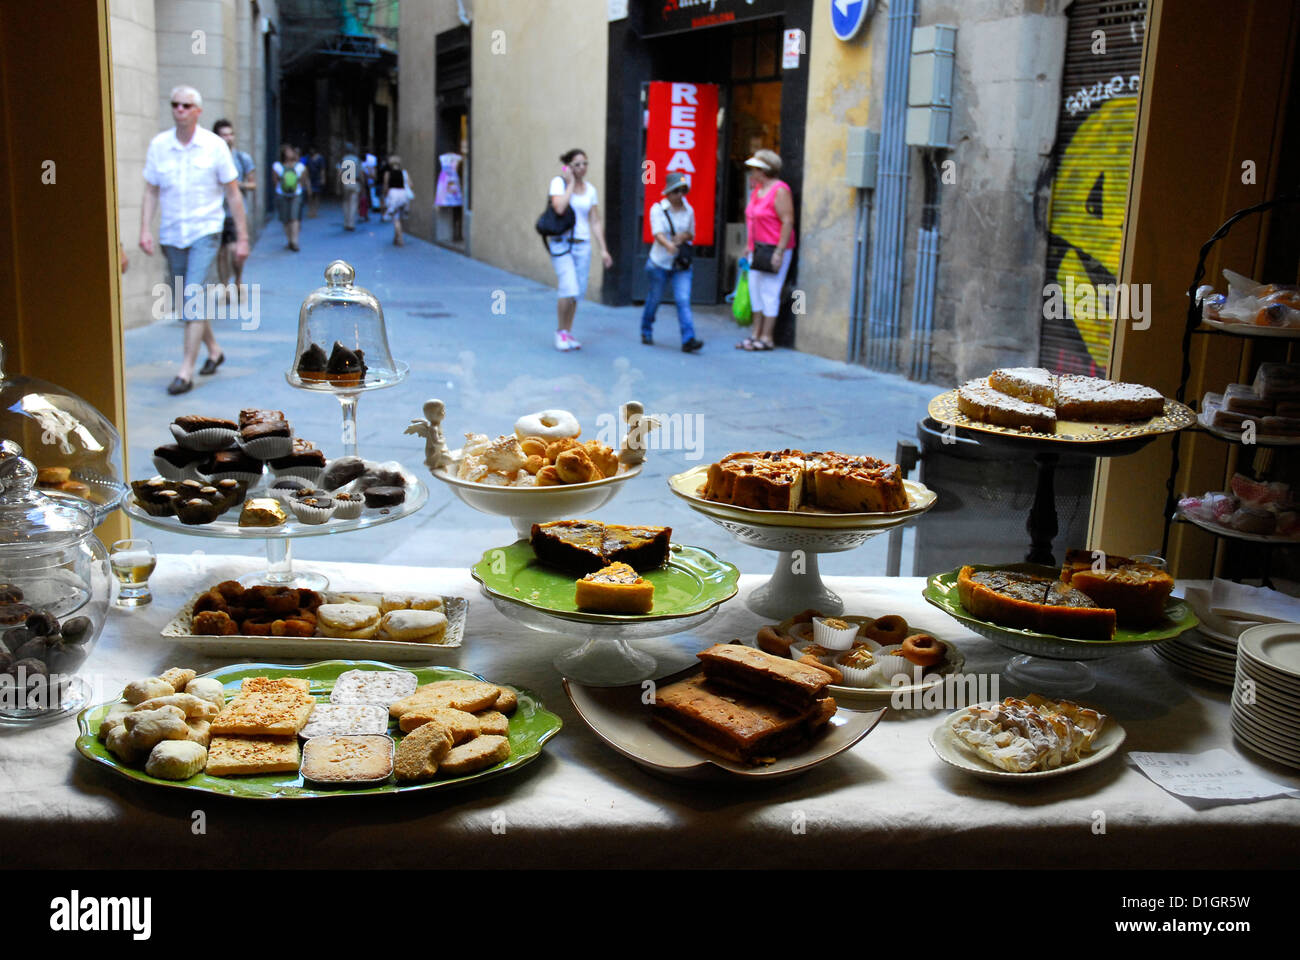 Caelum, artisan baked goods made by Carmelite nuns, Poor Clares, Benedictine. Palla Street # 8, Ciutat Vella, Barcelona. - Stock Image